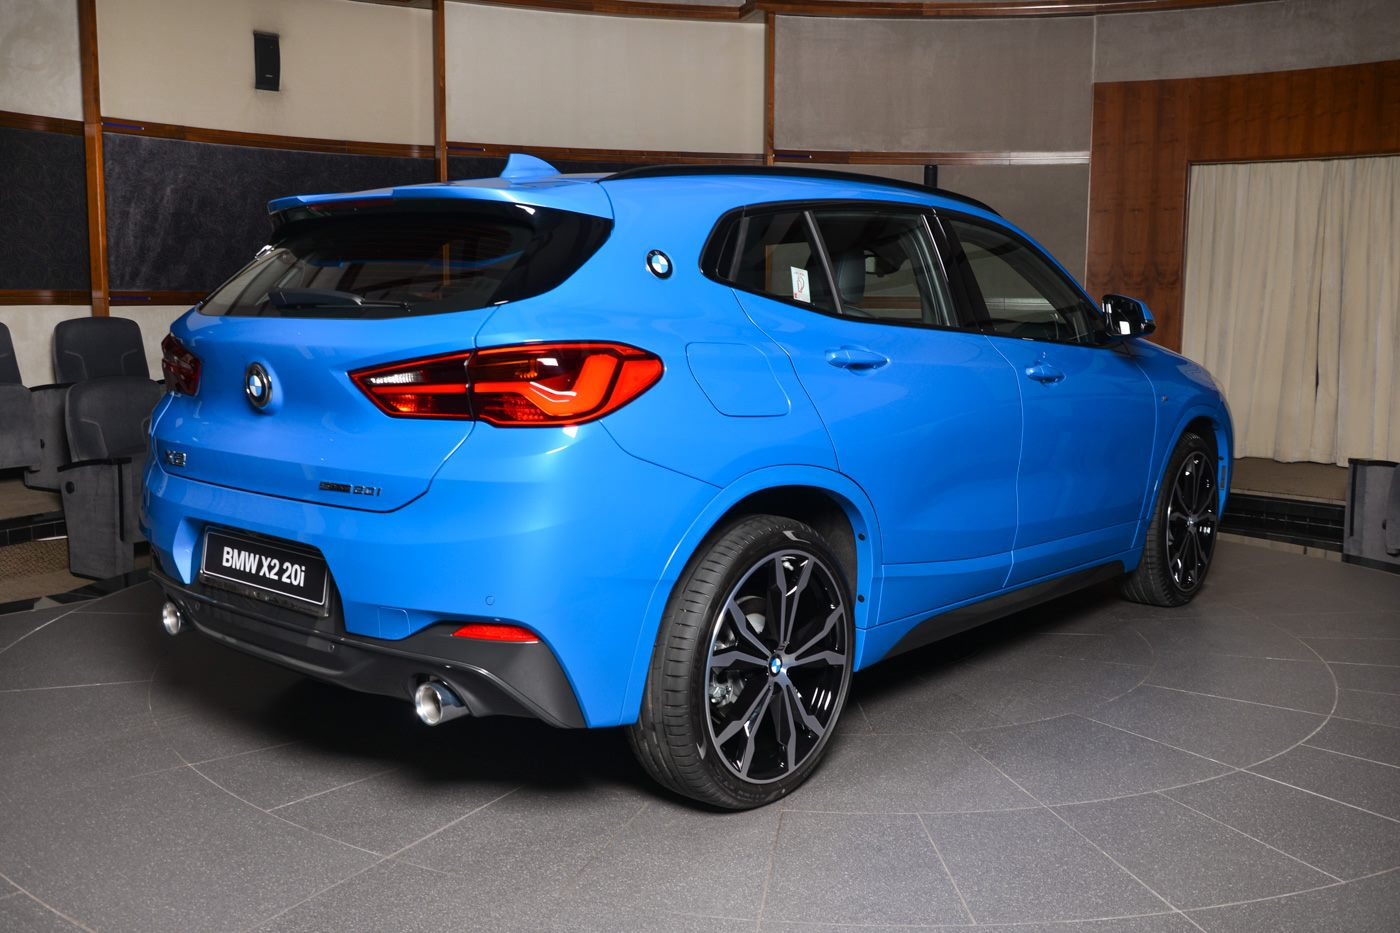 Photo Gallery Misano Blue Bmw X2 Sdrive20i Arrives In Abu